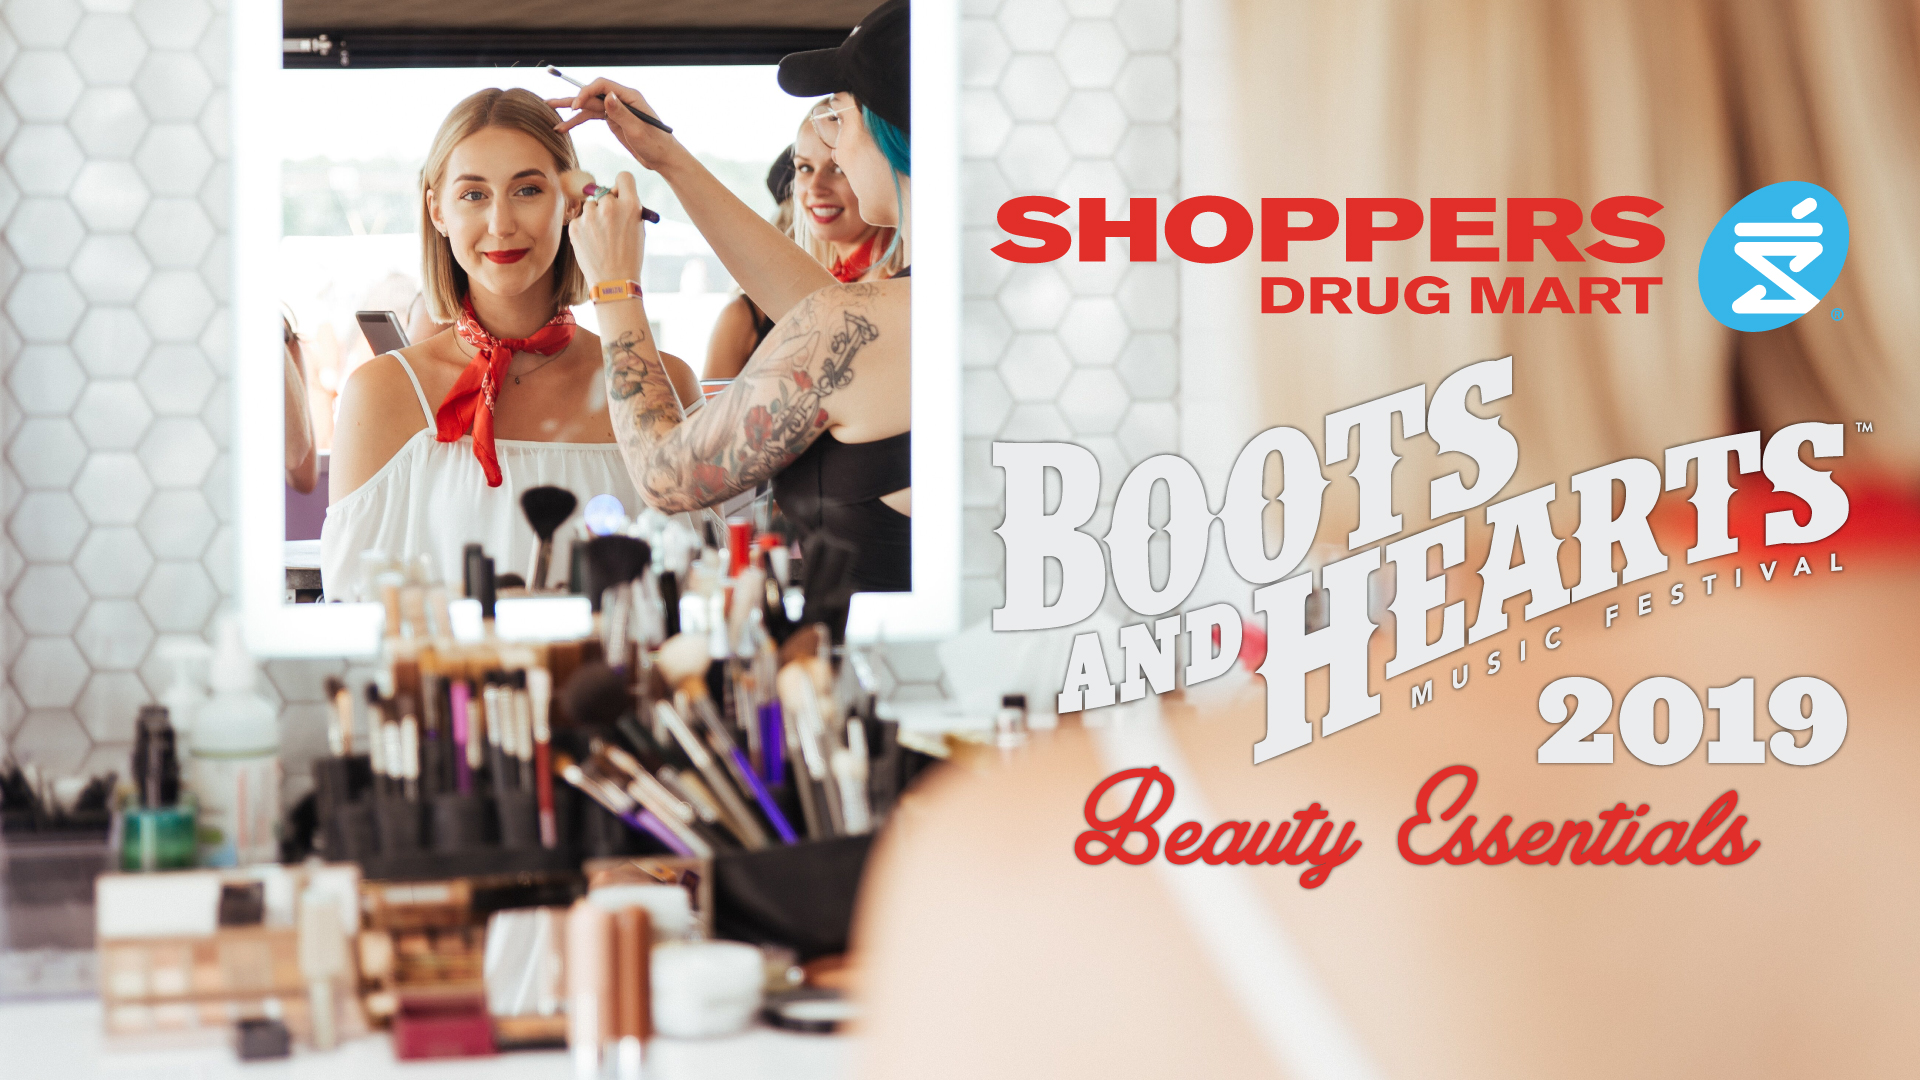 Boots and Hearts Beauty Essentials by Shoppers Drug Mart!